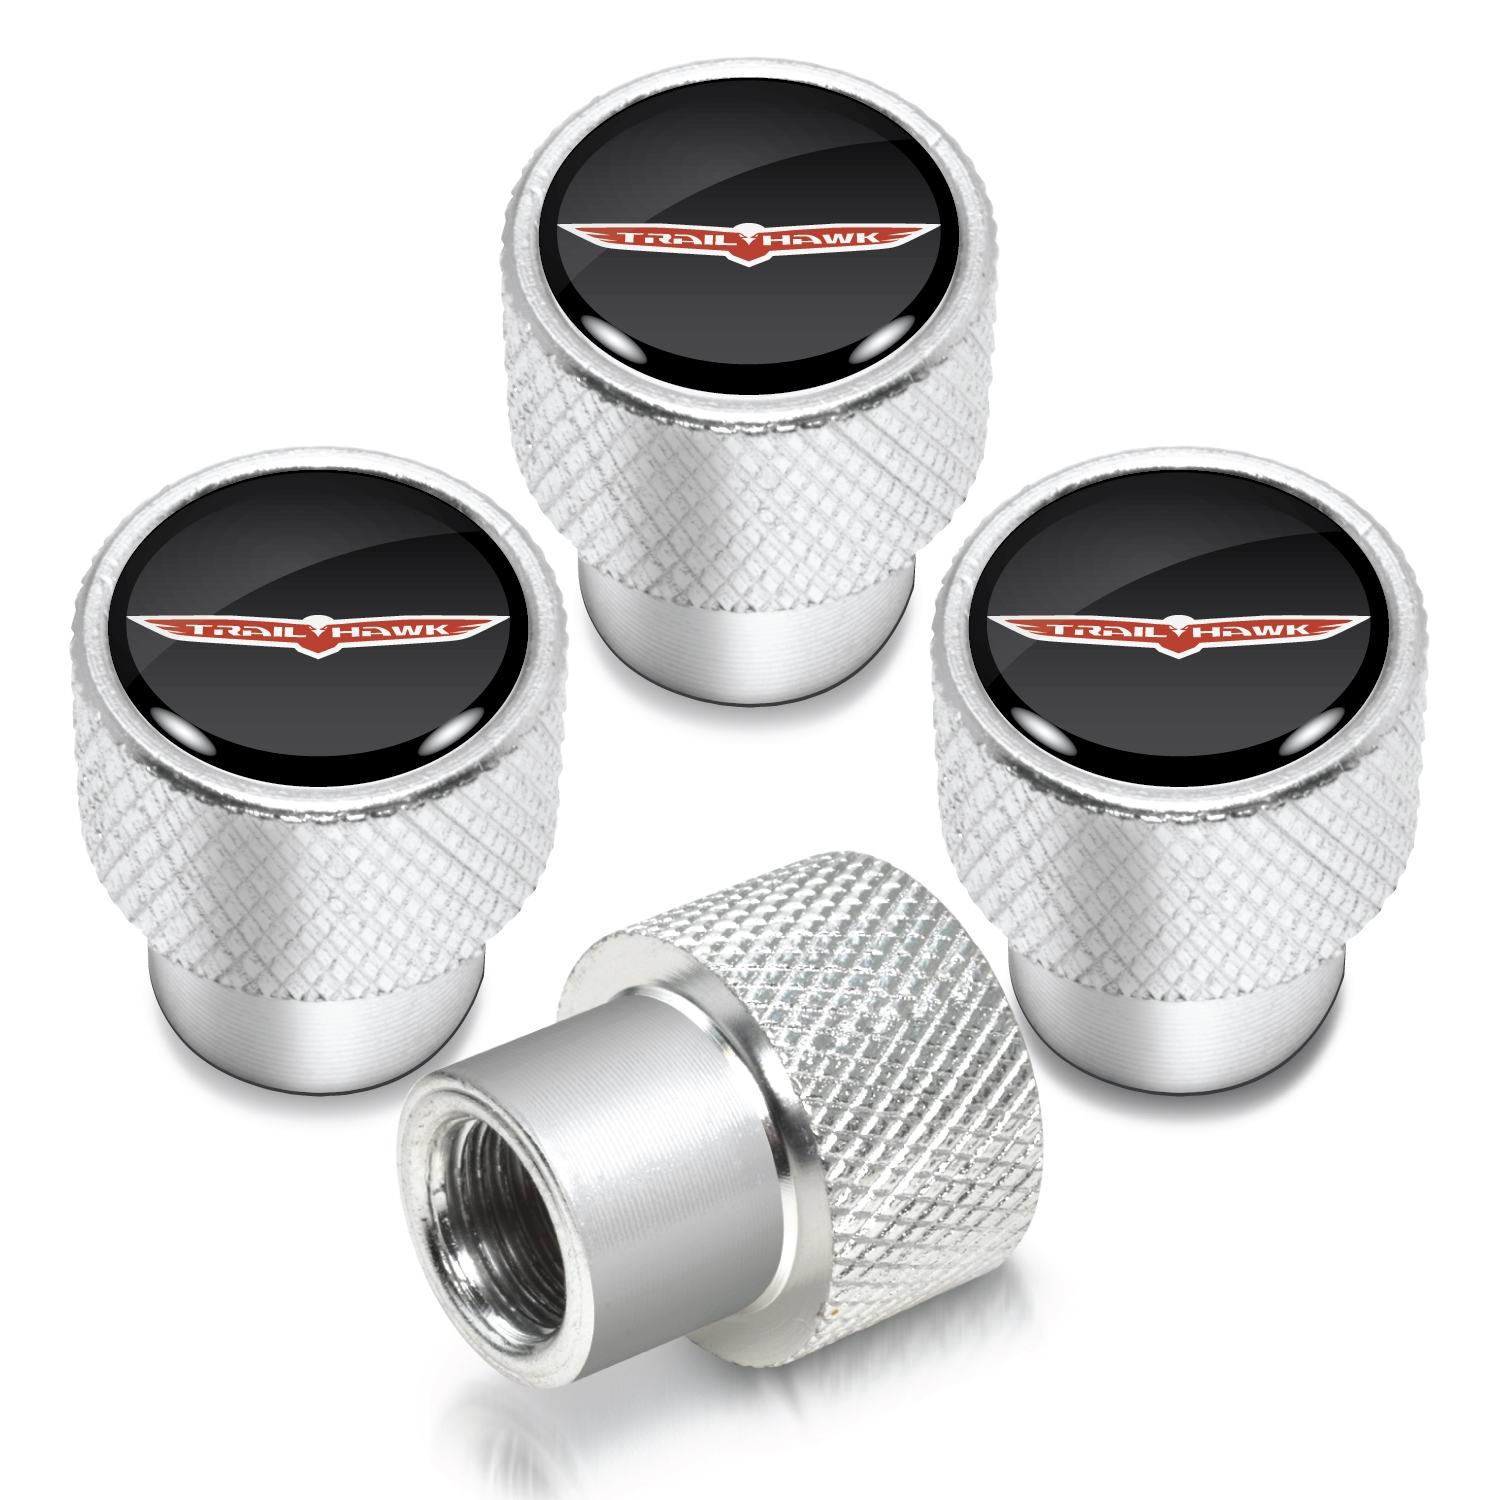 Jeep Trailhawk in Black on Shining Silver Aluminum Tire Valve Stem Caps